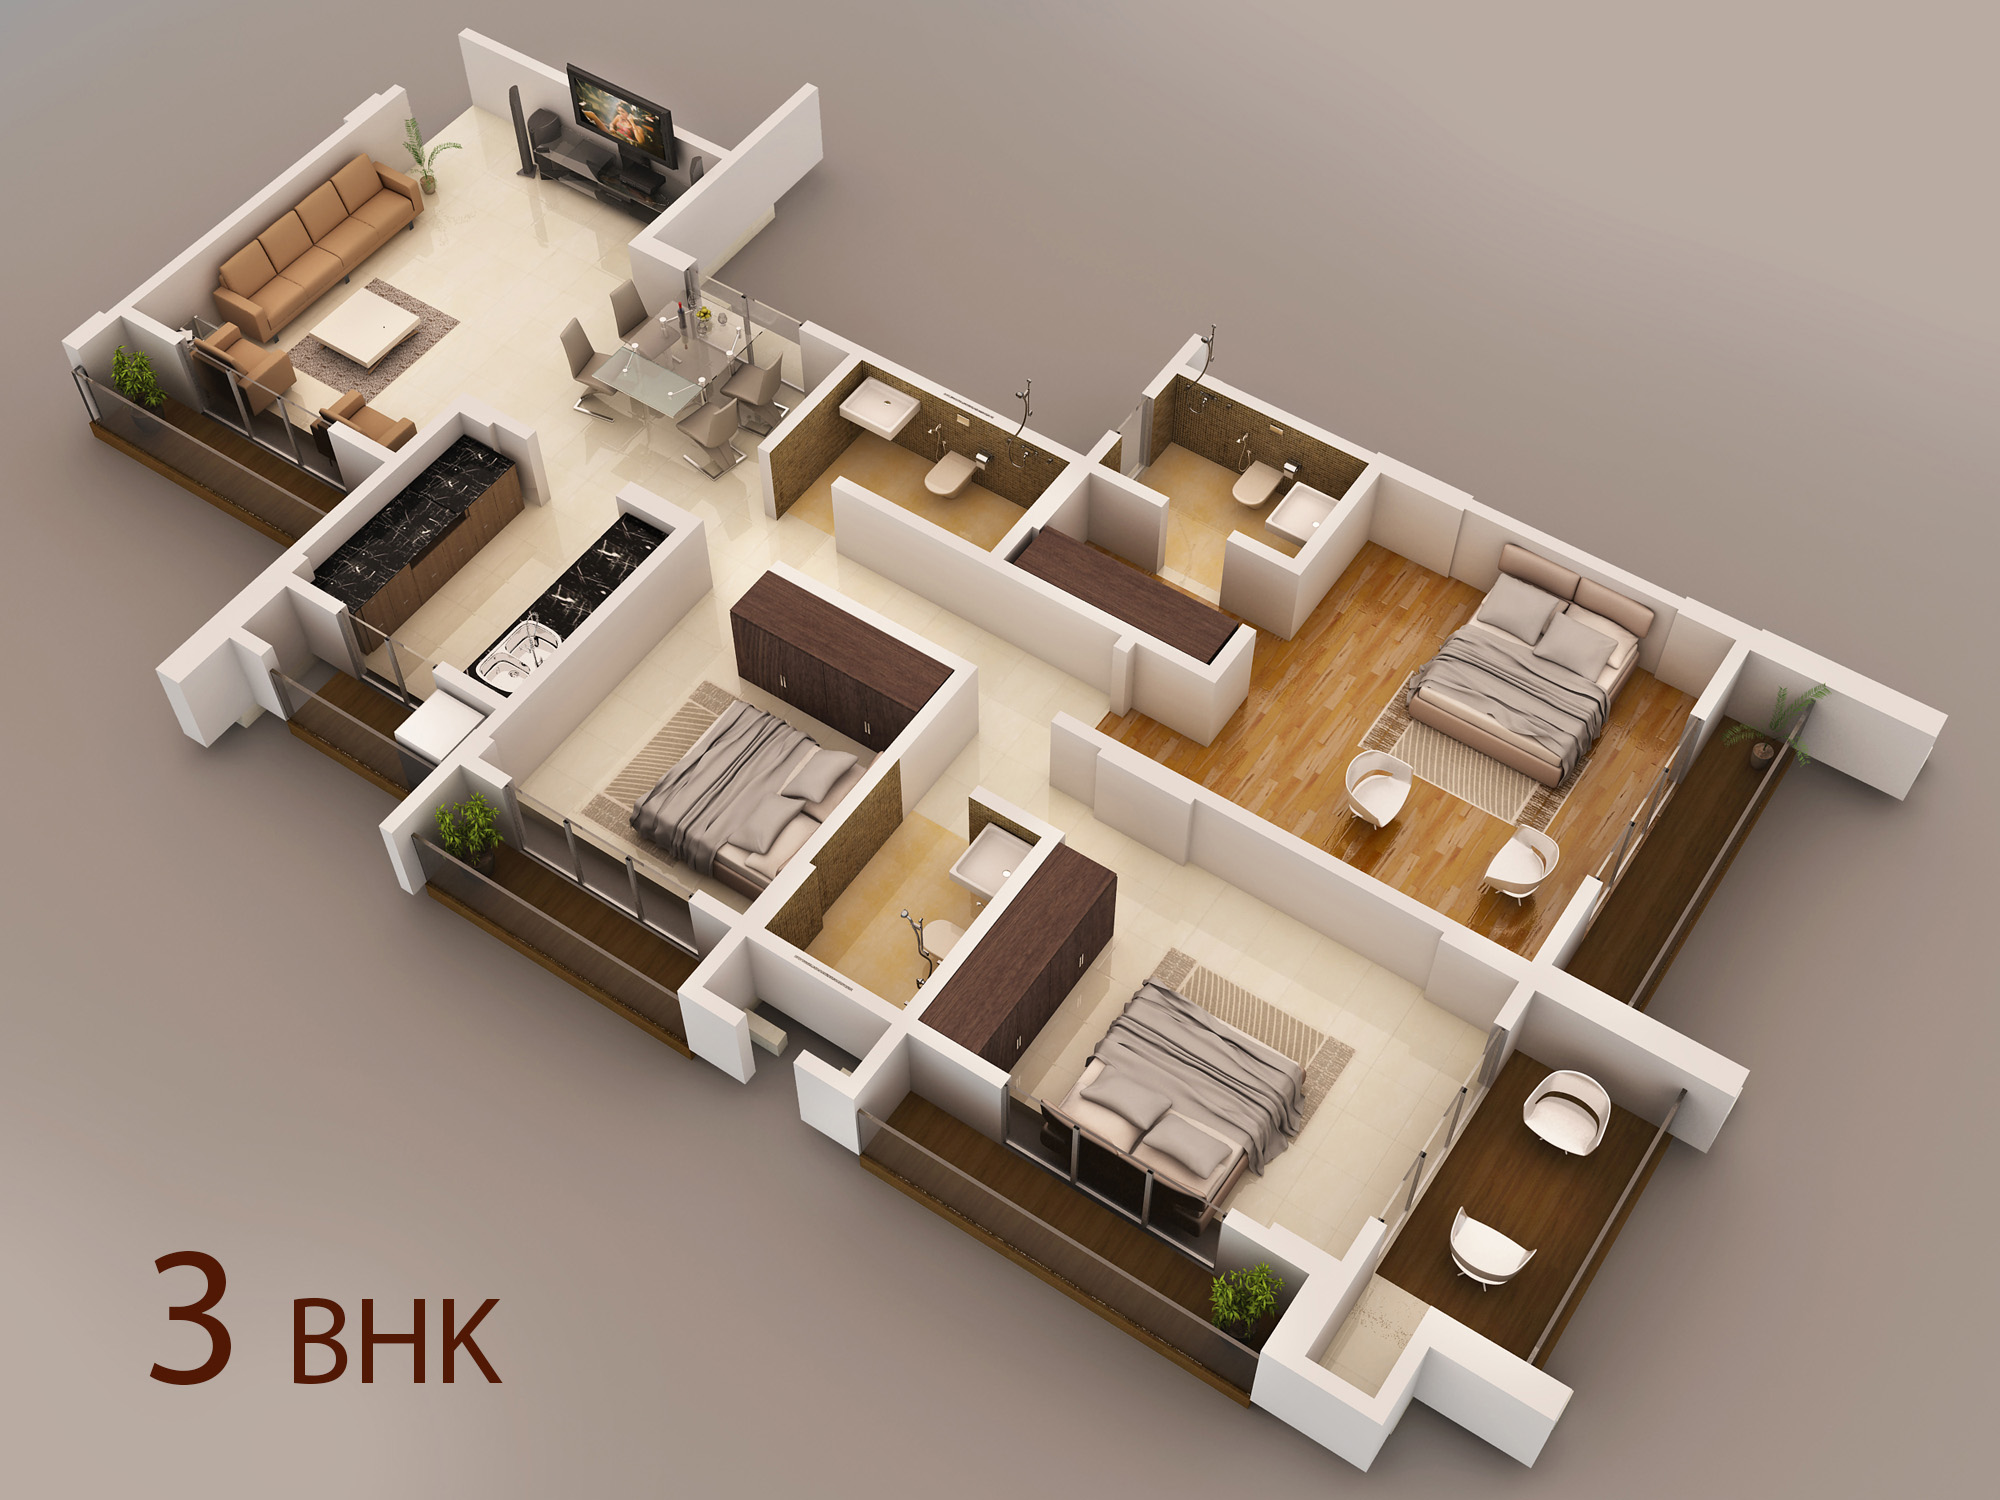 23 original home interior design for 3bhk flat for Best interior designs for 3 bhk flats